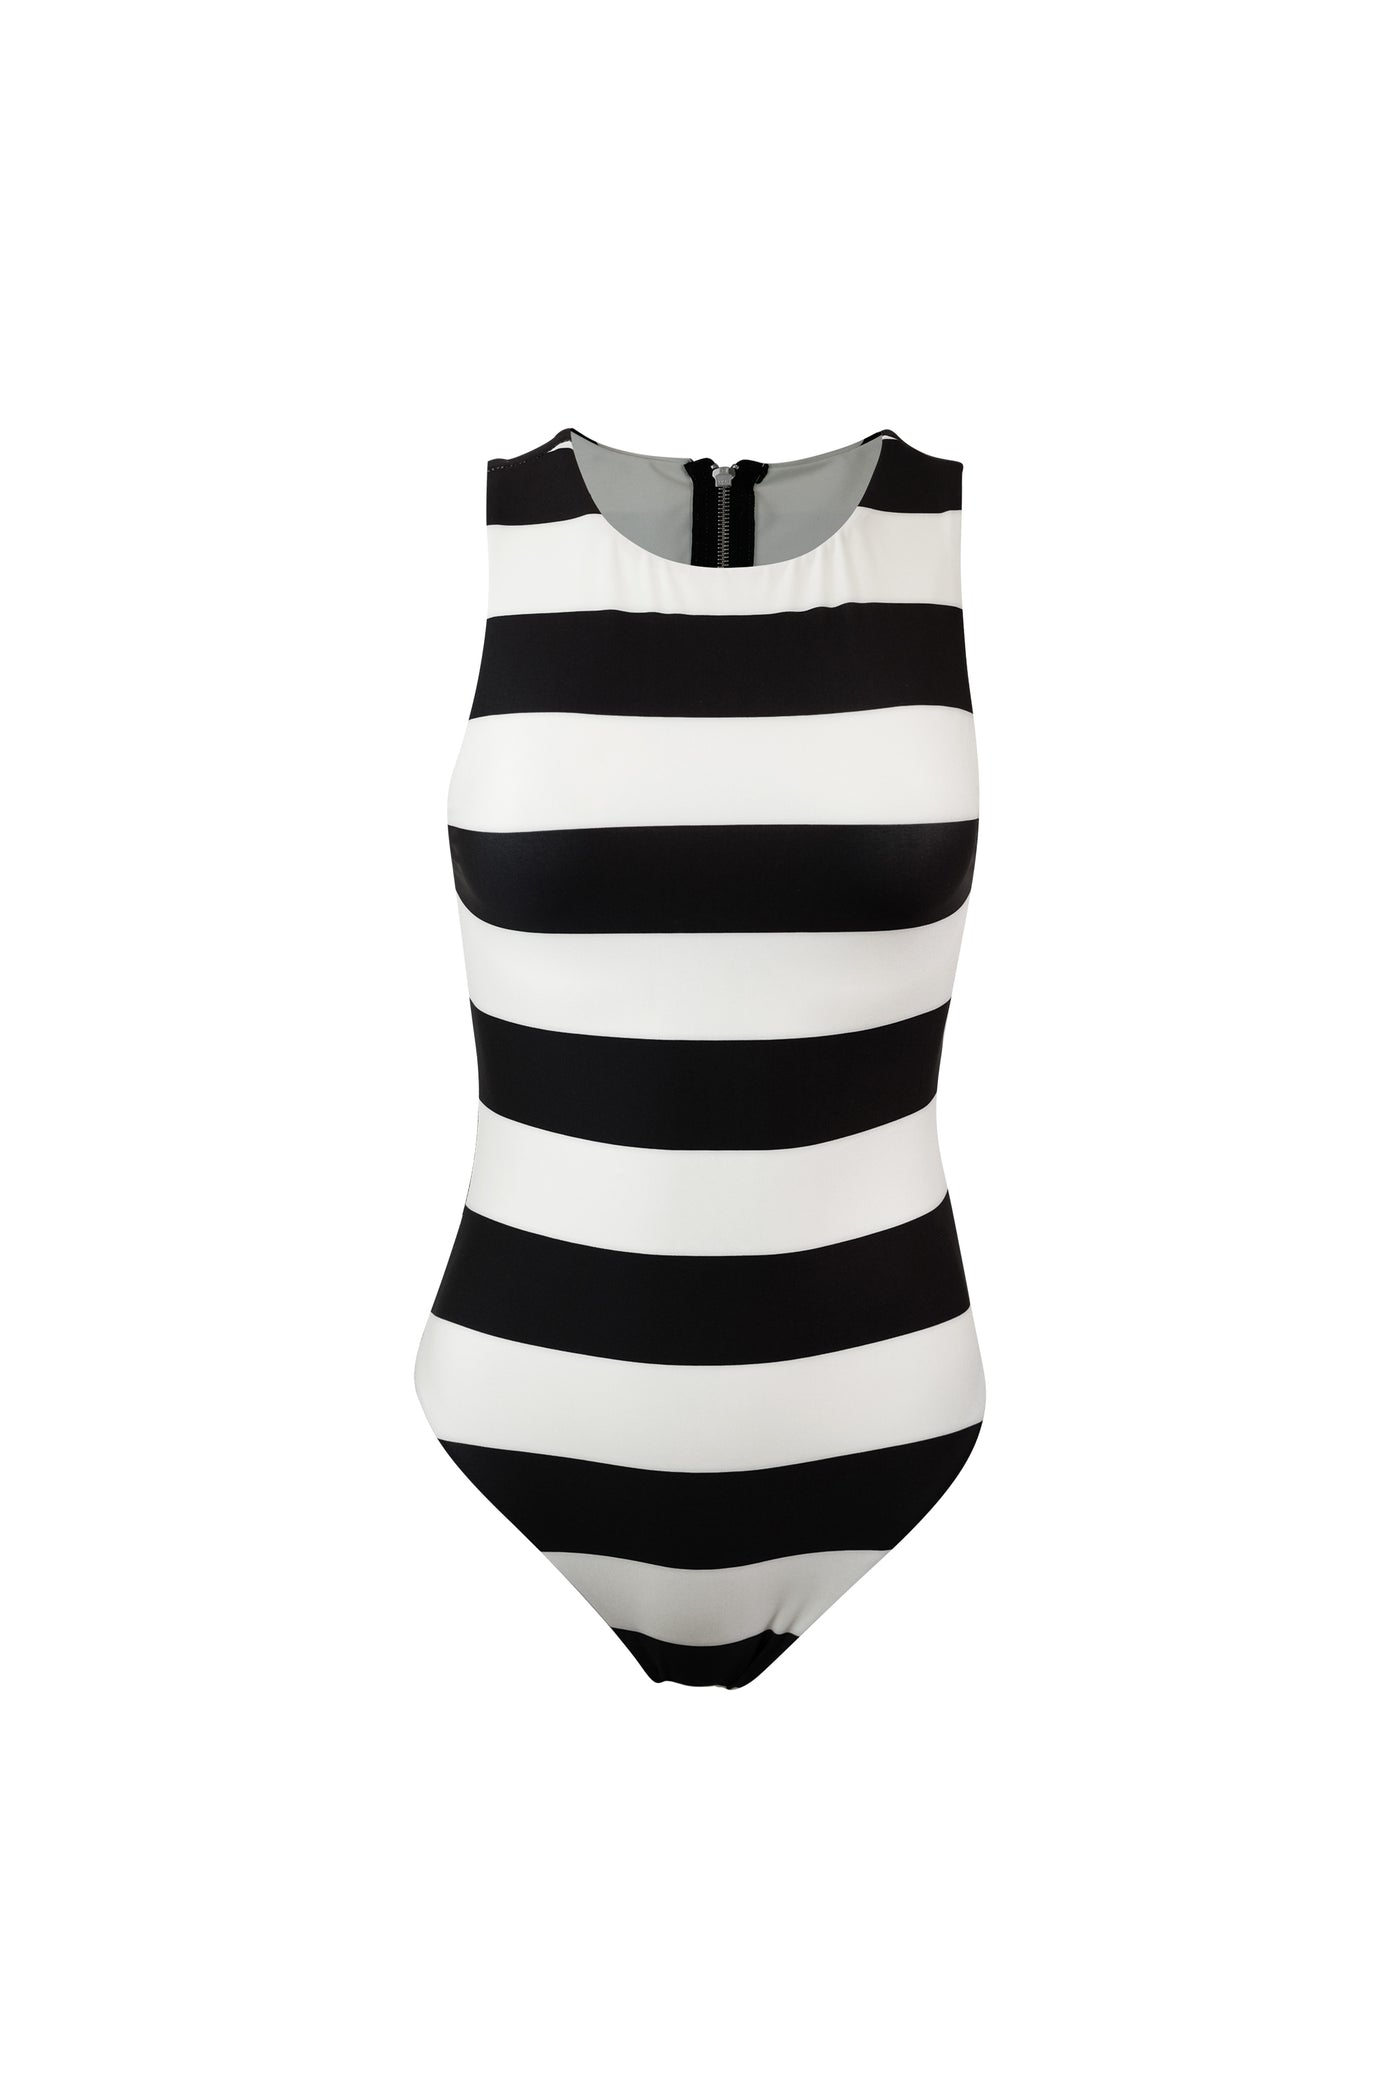 The Lady One Piece (Black Cream Stripe)